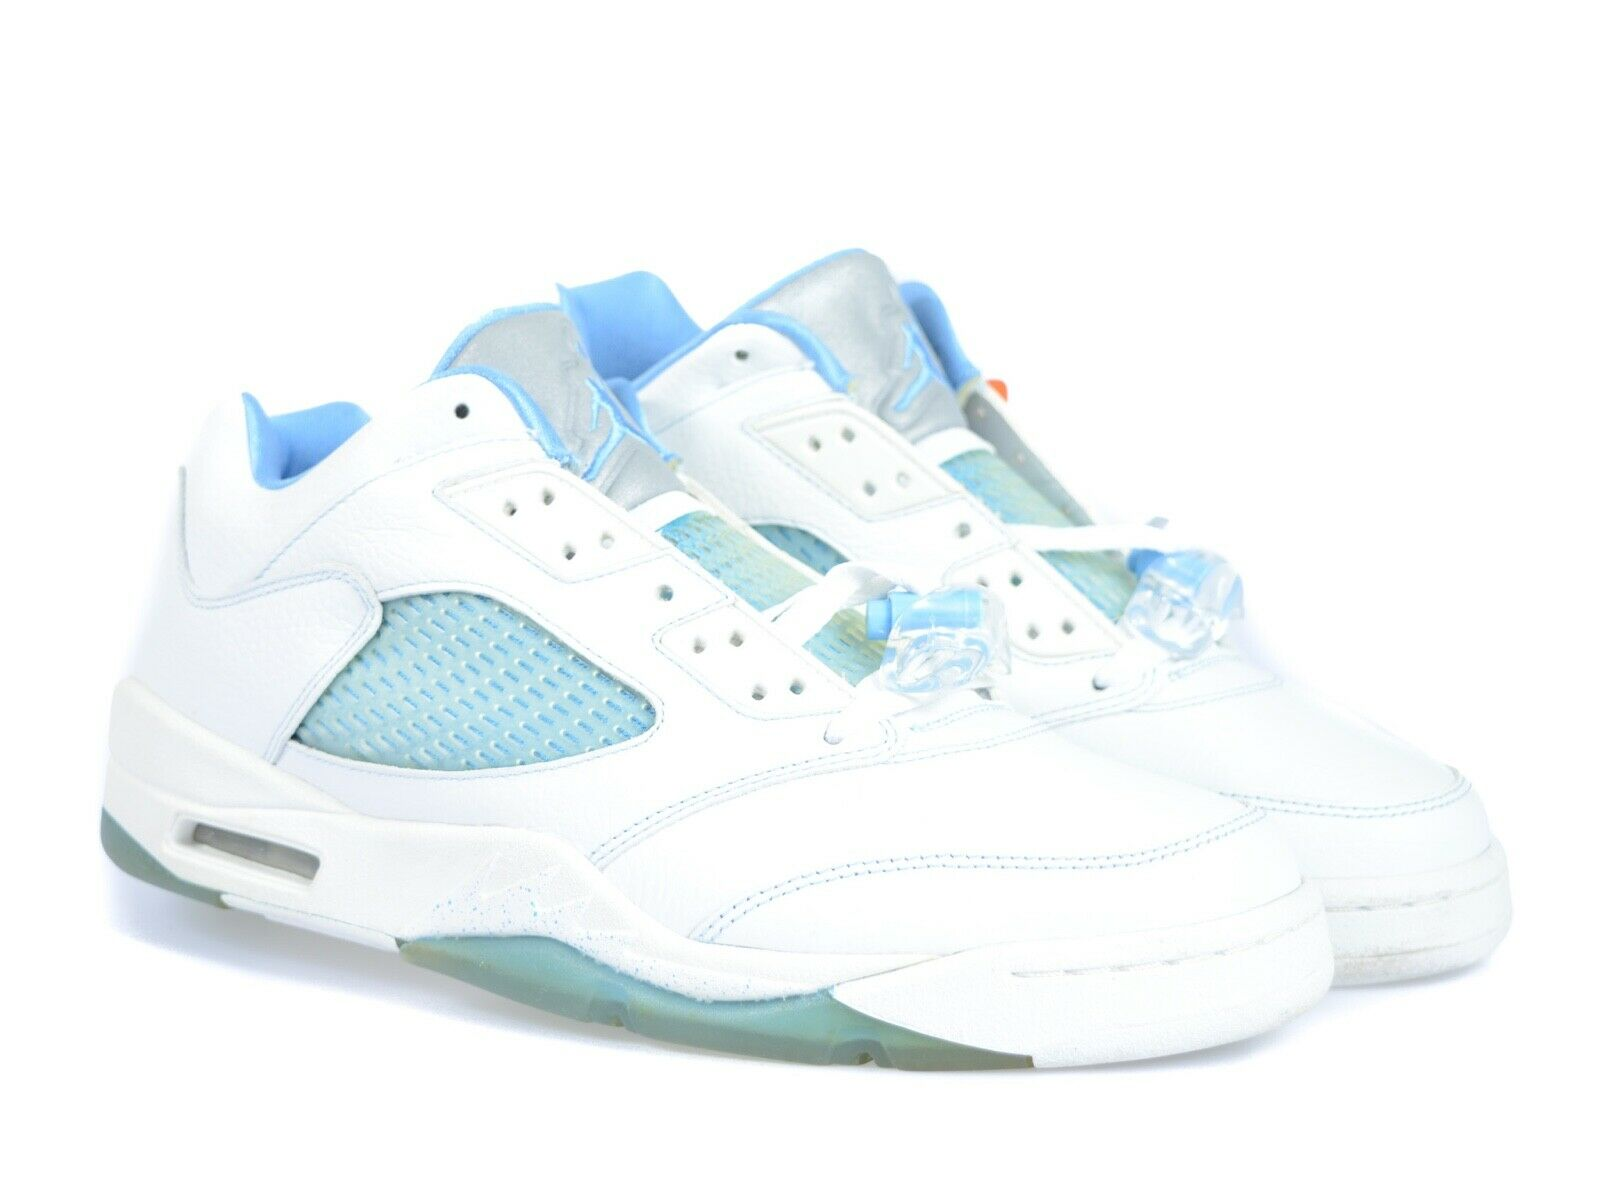 Nike Air Jordan 5 Retro Low University bluee W Size UK 9.5 EU 44.5 US 10.5